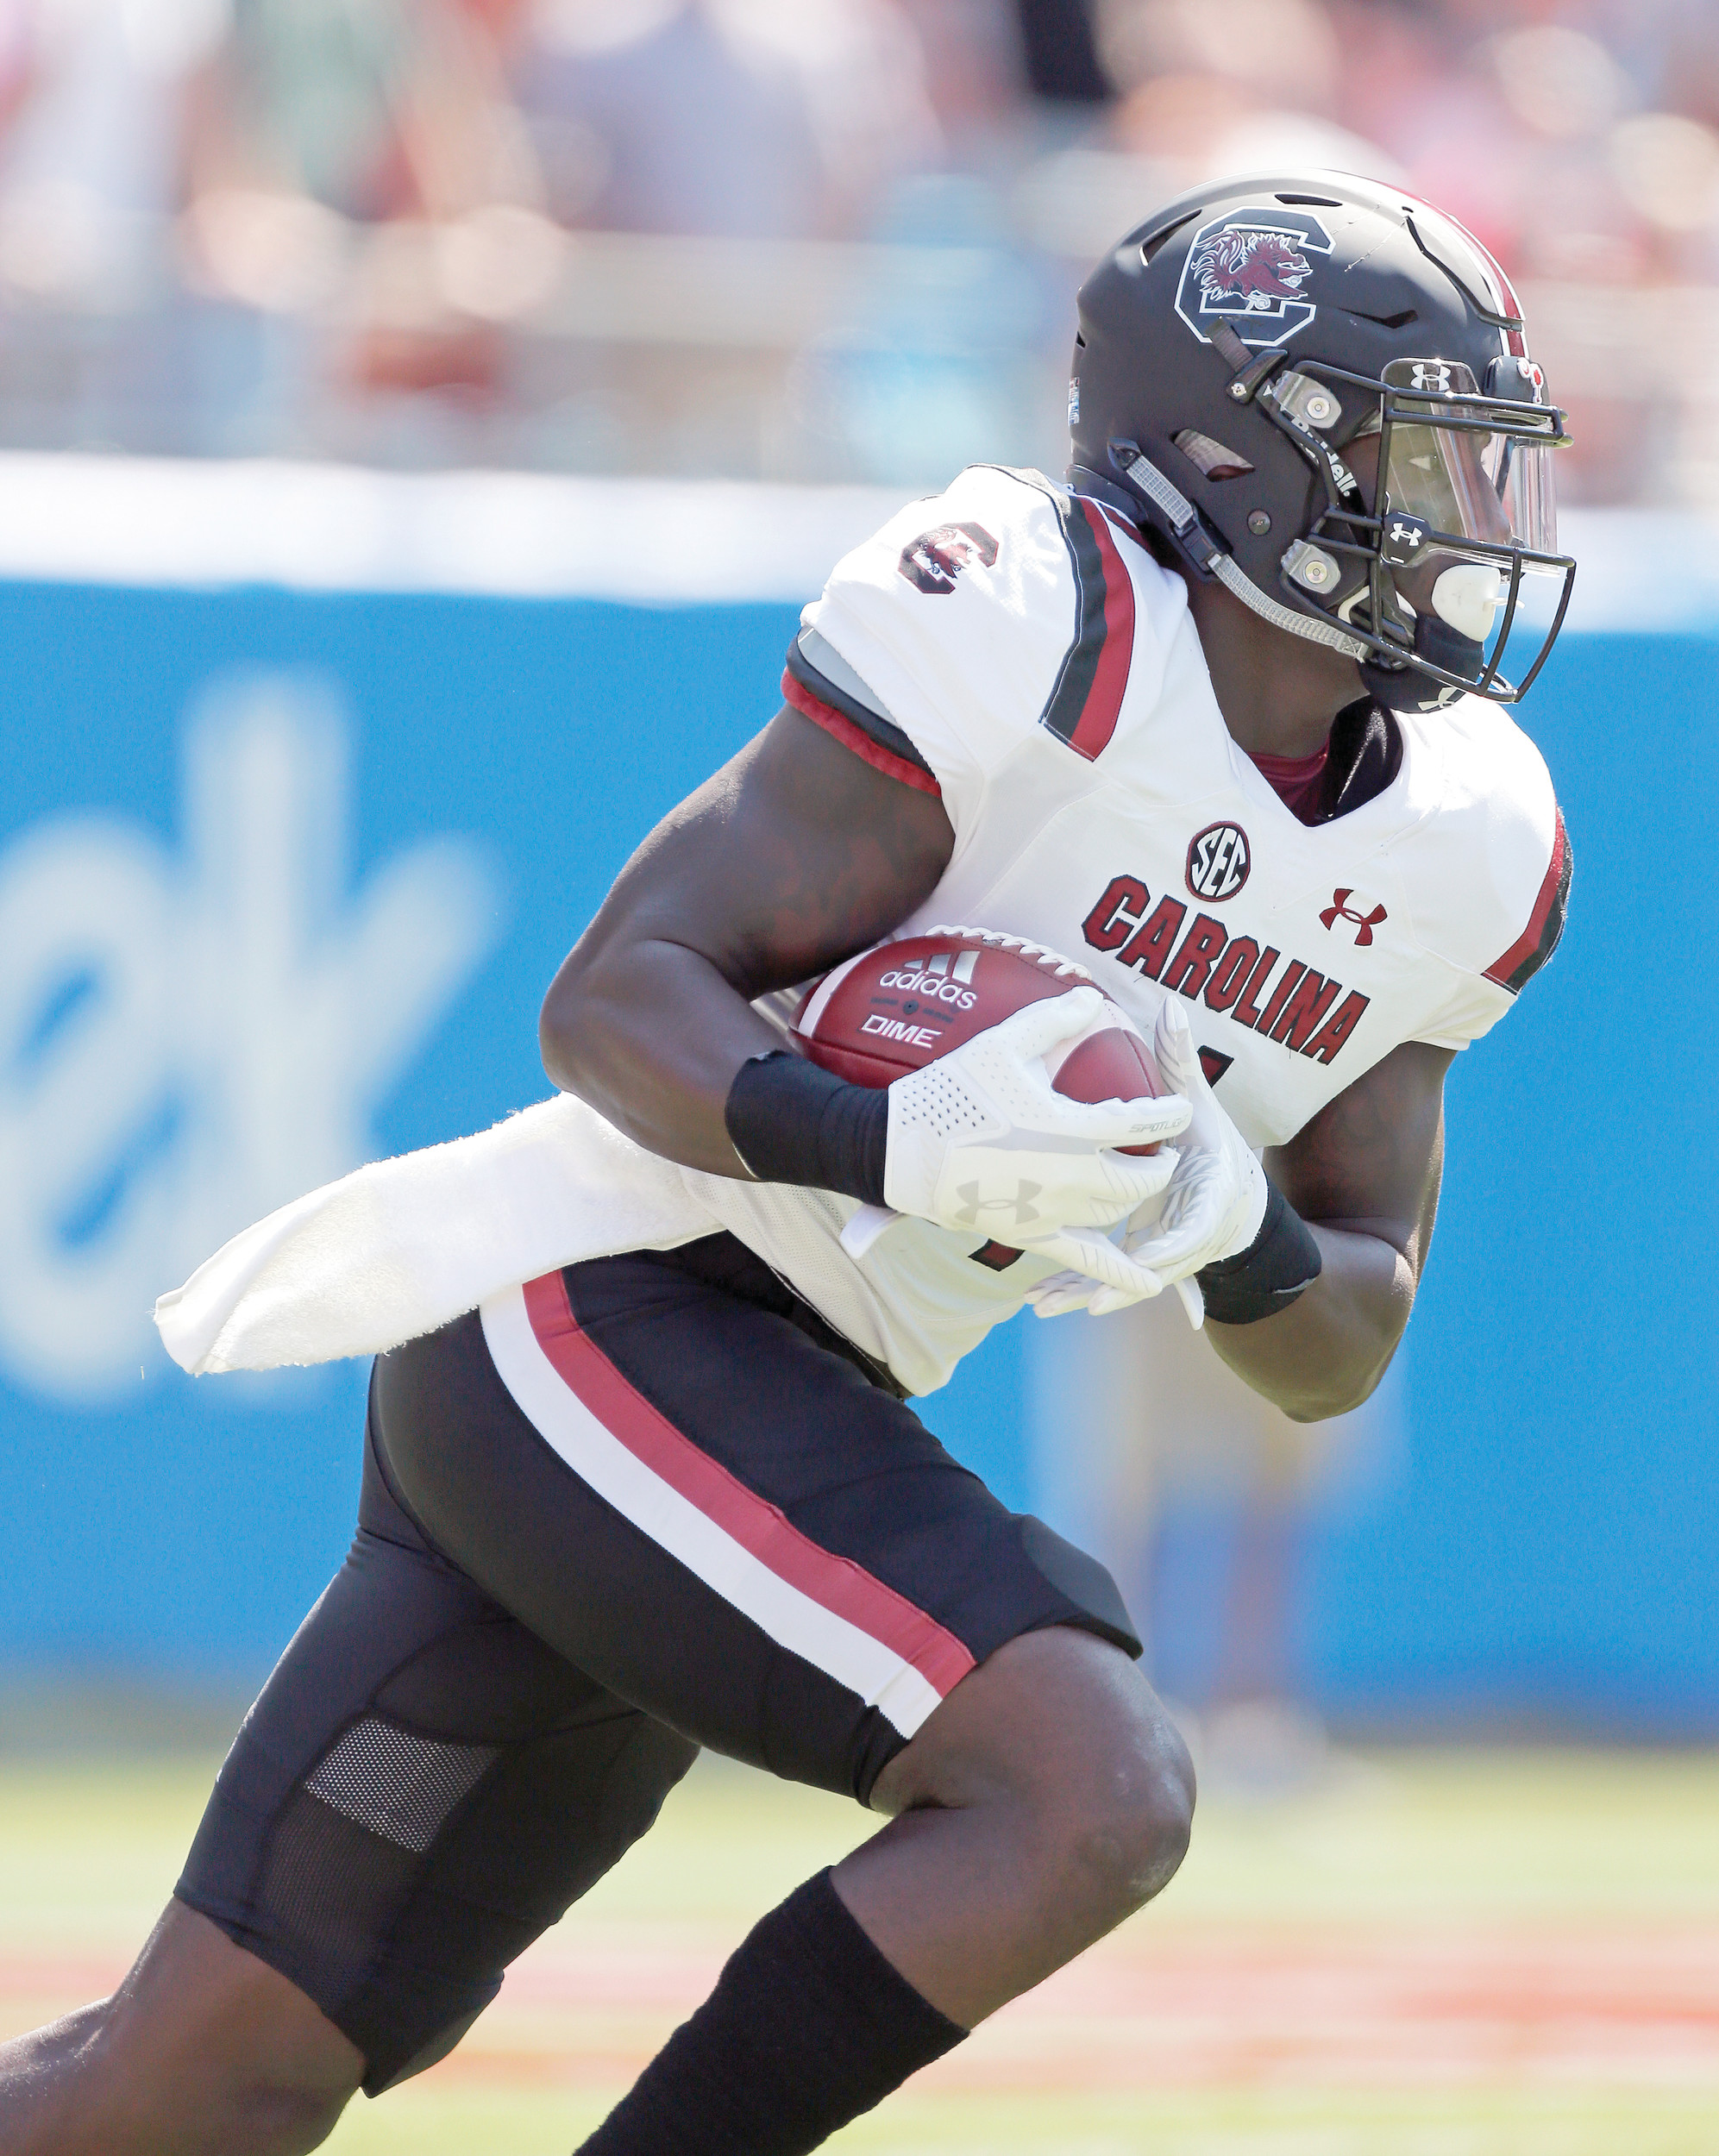 If South Carolina is going to surprise in the Southeastern Conference, it will likely be the dynamic, versatile wide receiver Deebo Samuel who'll make it happen. Samuel has already returned two kickoffs for touchdowns in the Gamecocks' first two games.